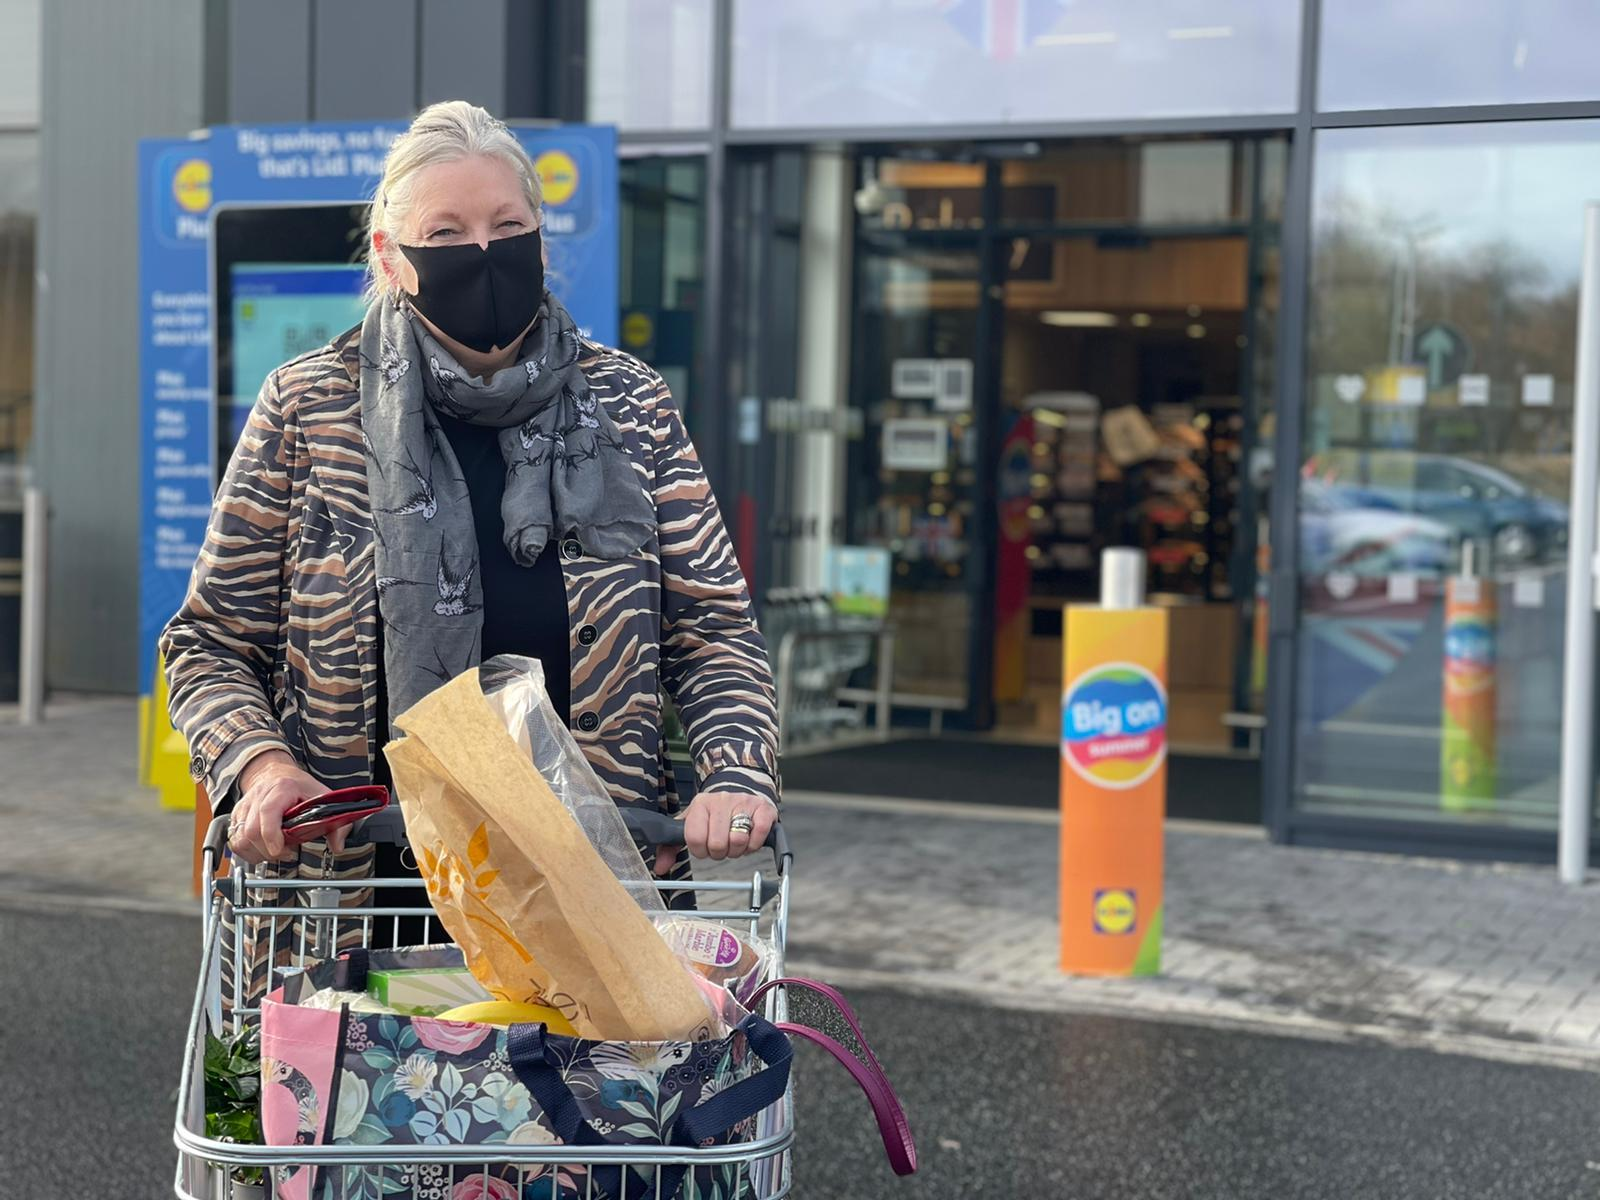 Shopper Tracey Gunes outside the new Lidl store at the Goldstone Retail Park in Hove